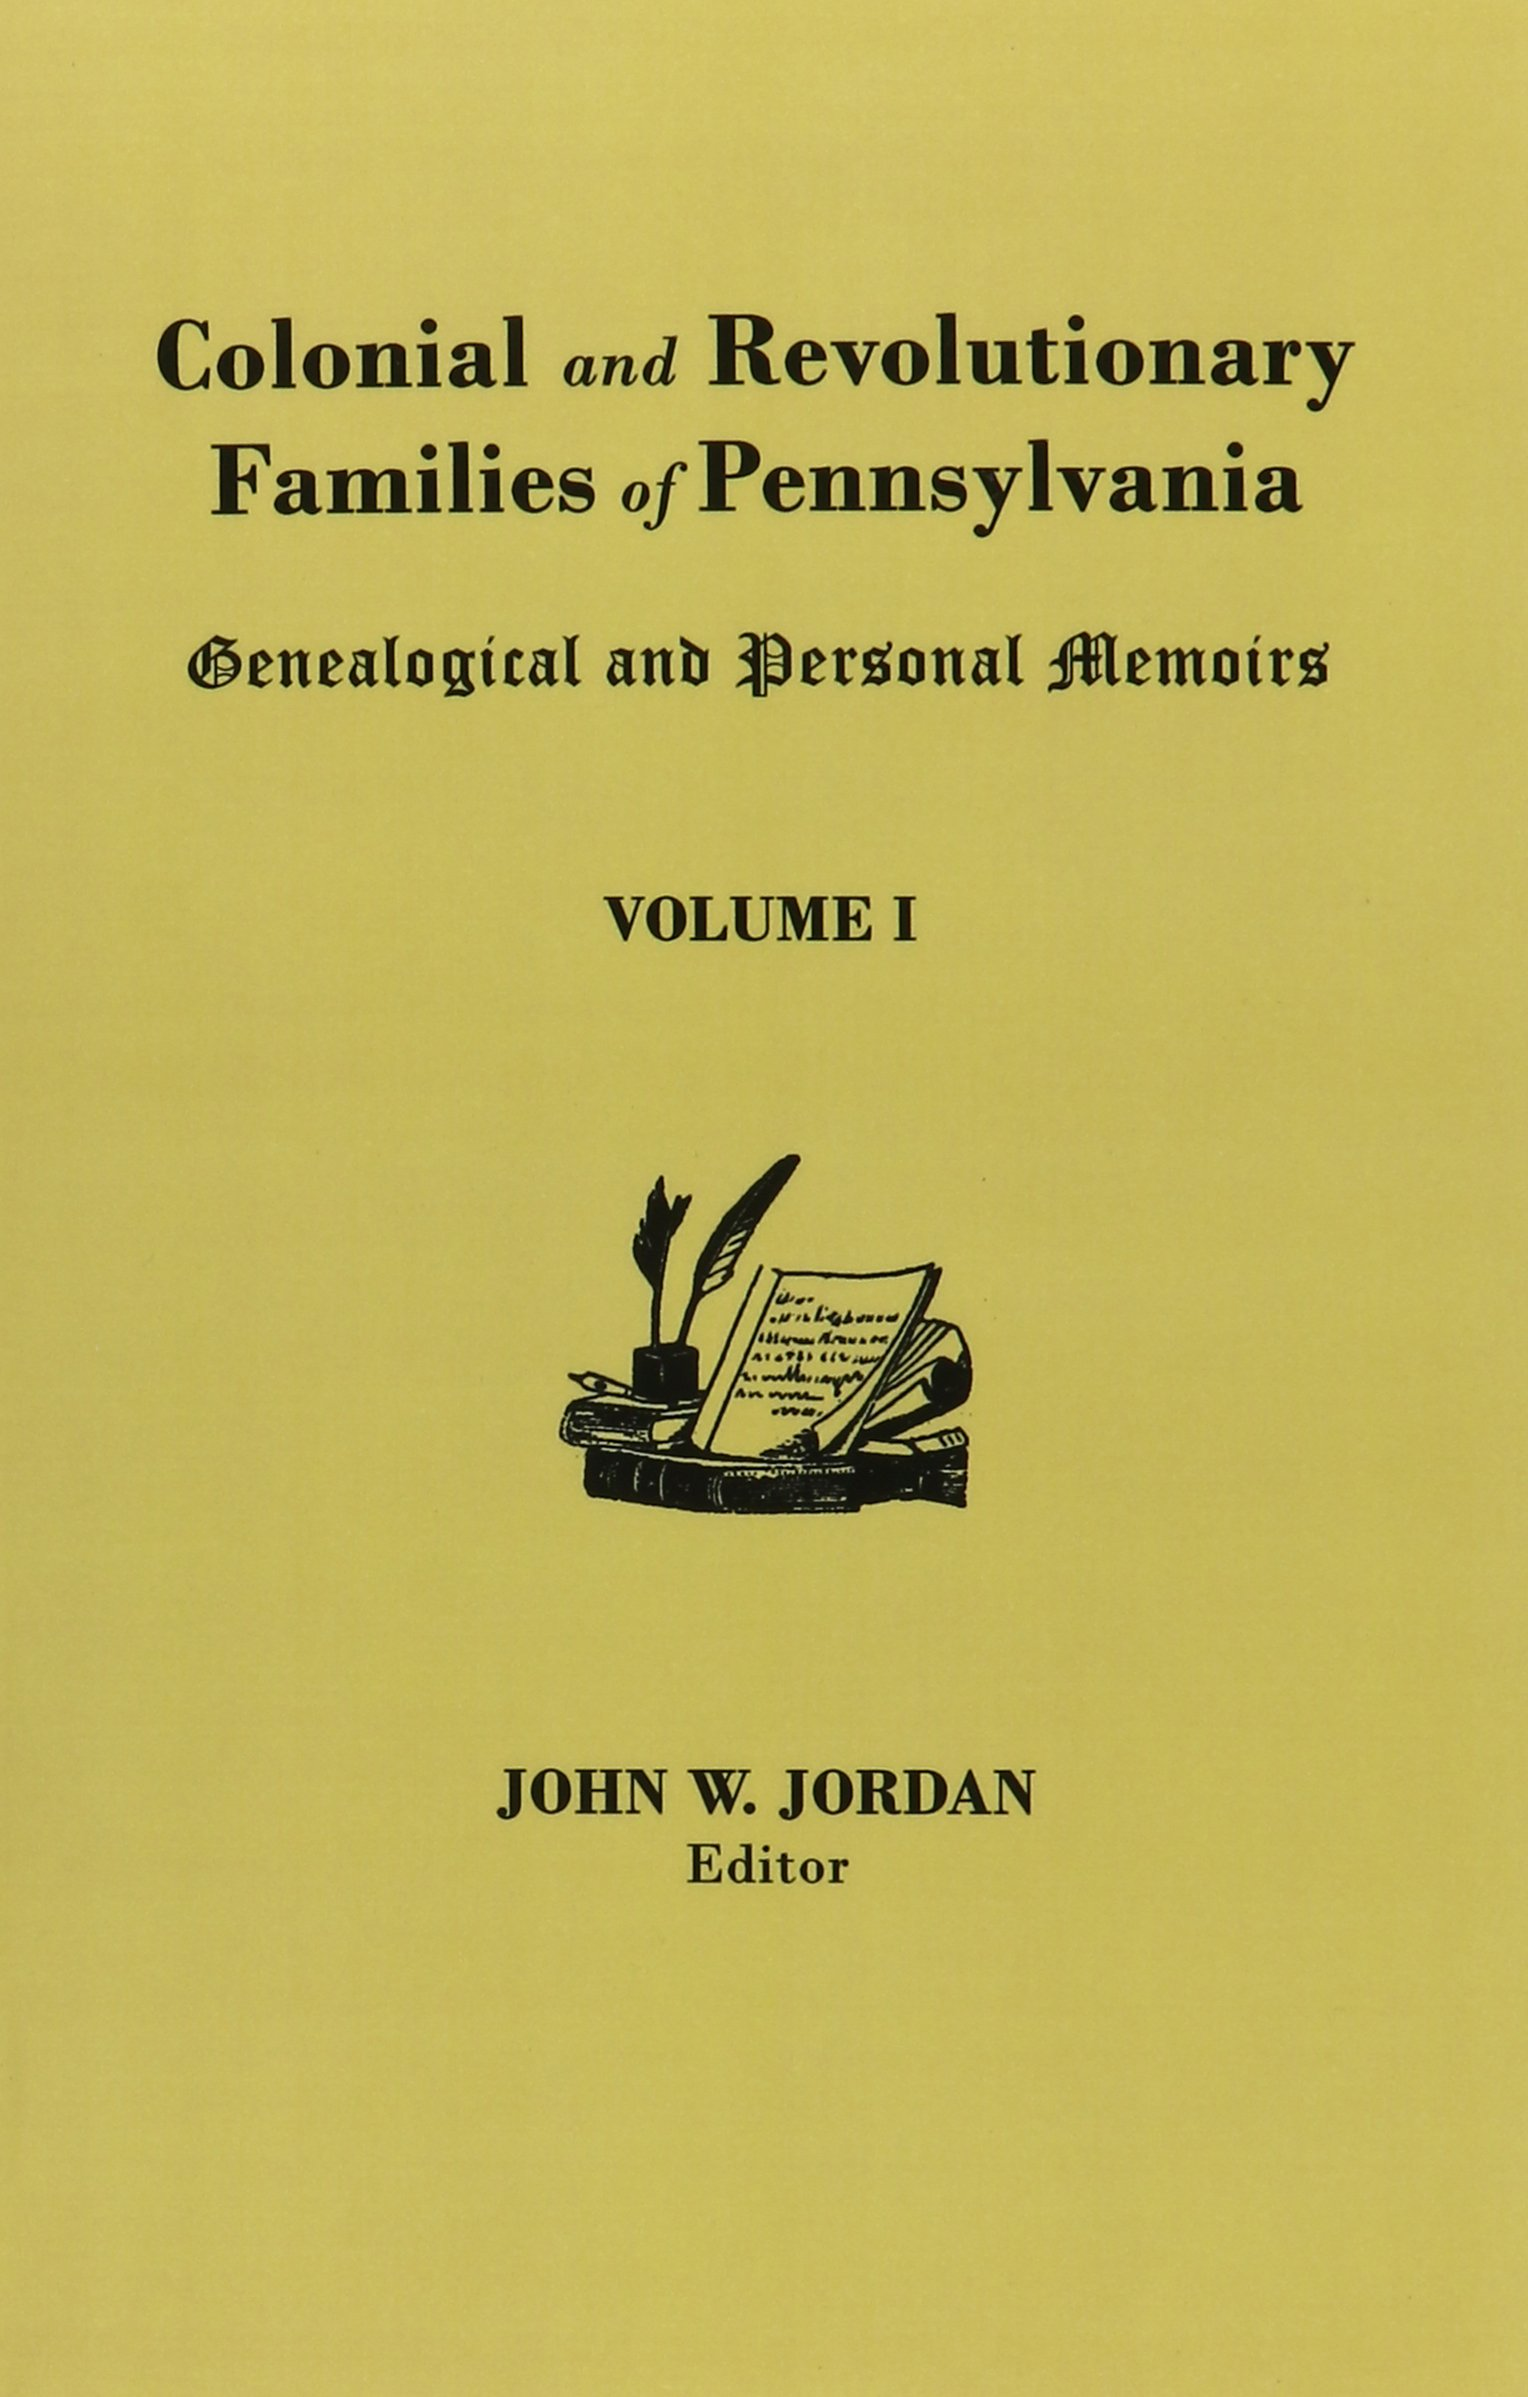 Colonial And Revolutionary Families Of Pennsylvania: Amazon.es: John W. Jordan: Libros en idiomas extranjeros